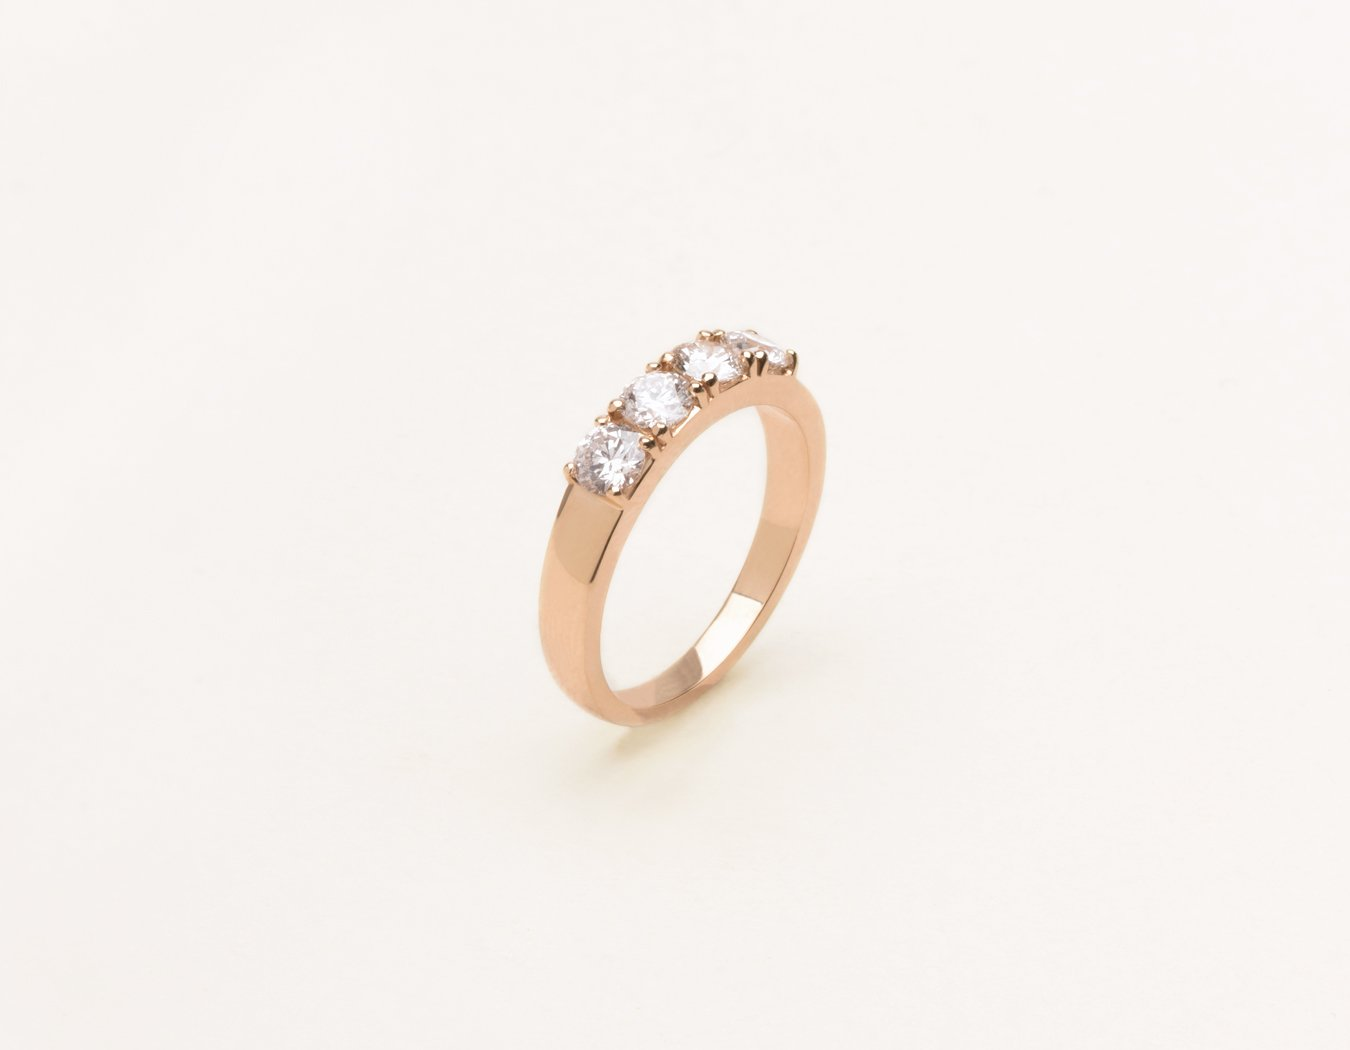 Simple elegant 14k solid gold Round Tetrad Band diamond ring by Vrai and Oro minimalist jewelry, 14K Rose Gold